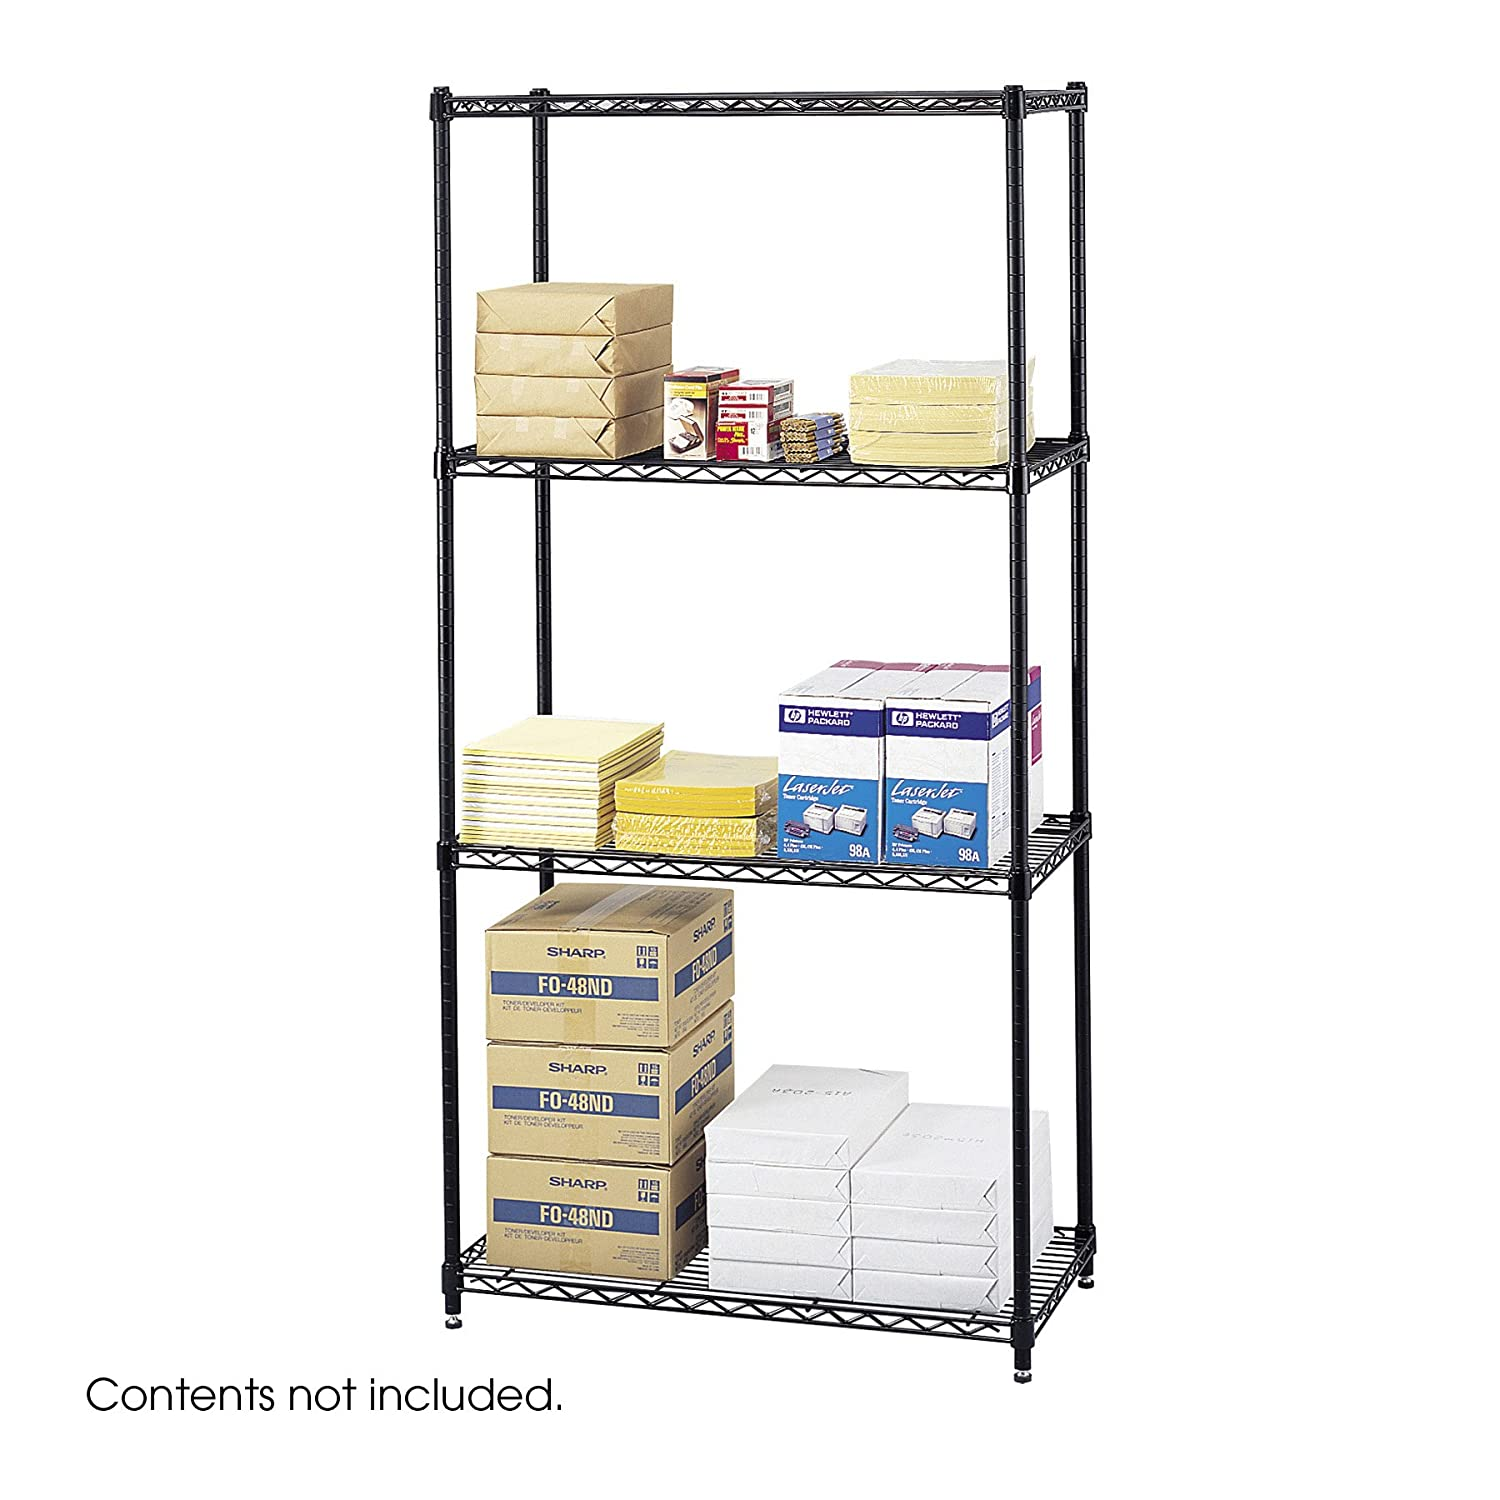 "Amazon.com: Safco Products 5276BL Commercial Wire Shelving 36"" W x 18"" D  Basic Unit (Extra Shelves 5243BL sold separately), Black: Kitchen & Dining"